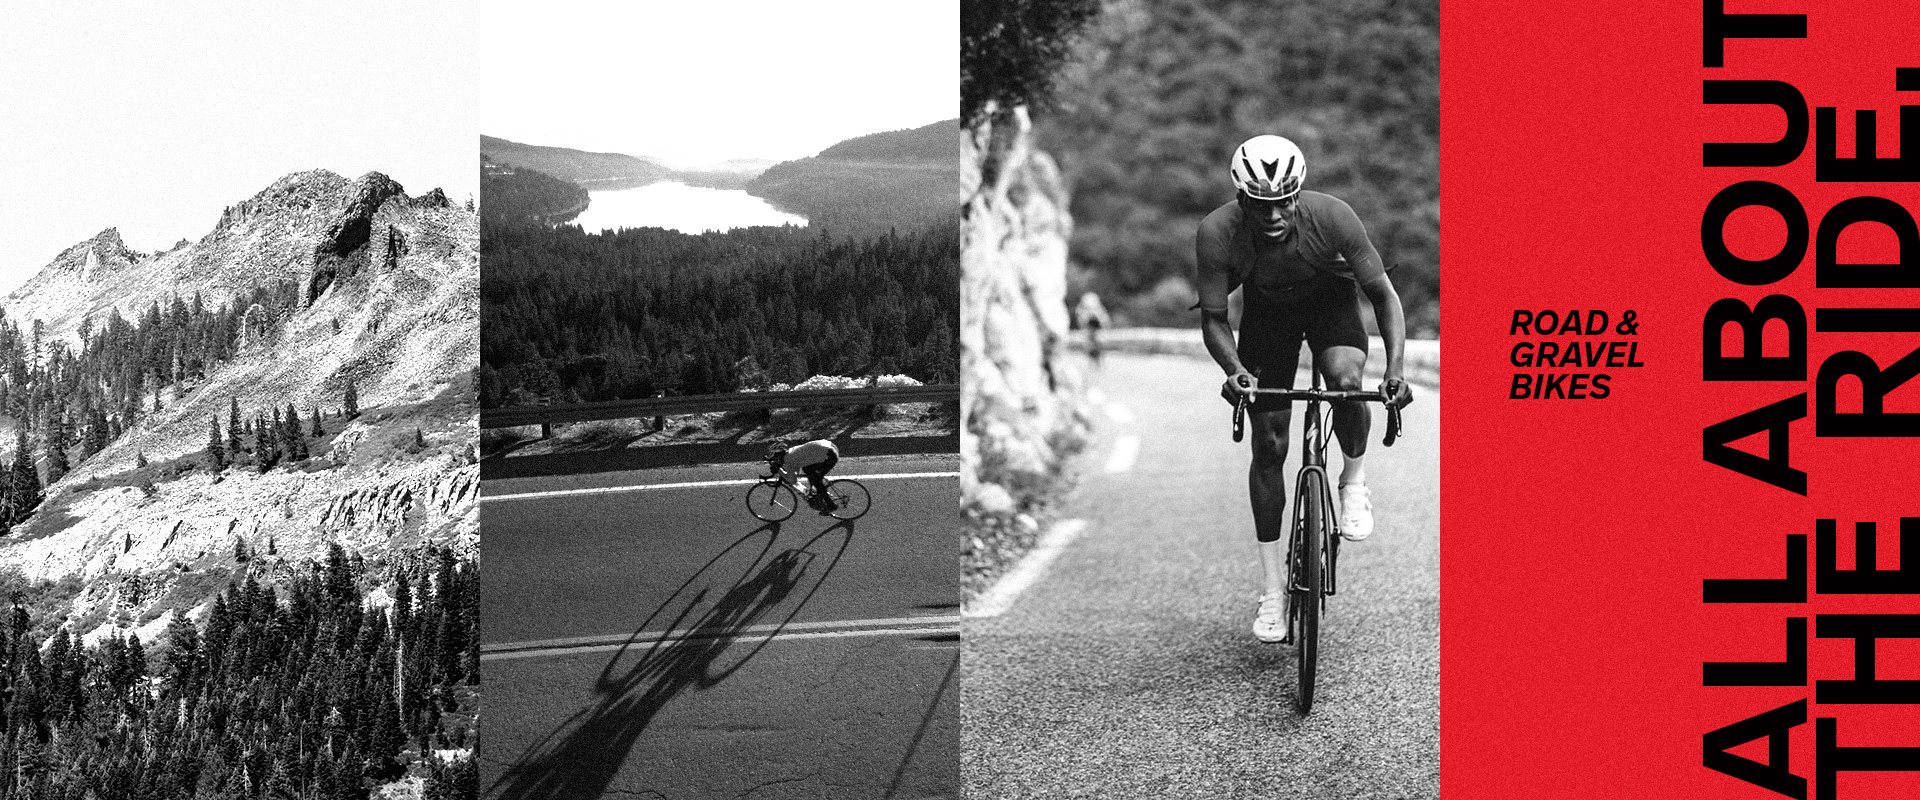 Pacos Road and Gravel Bike Gear